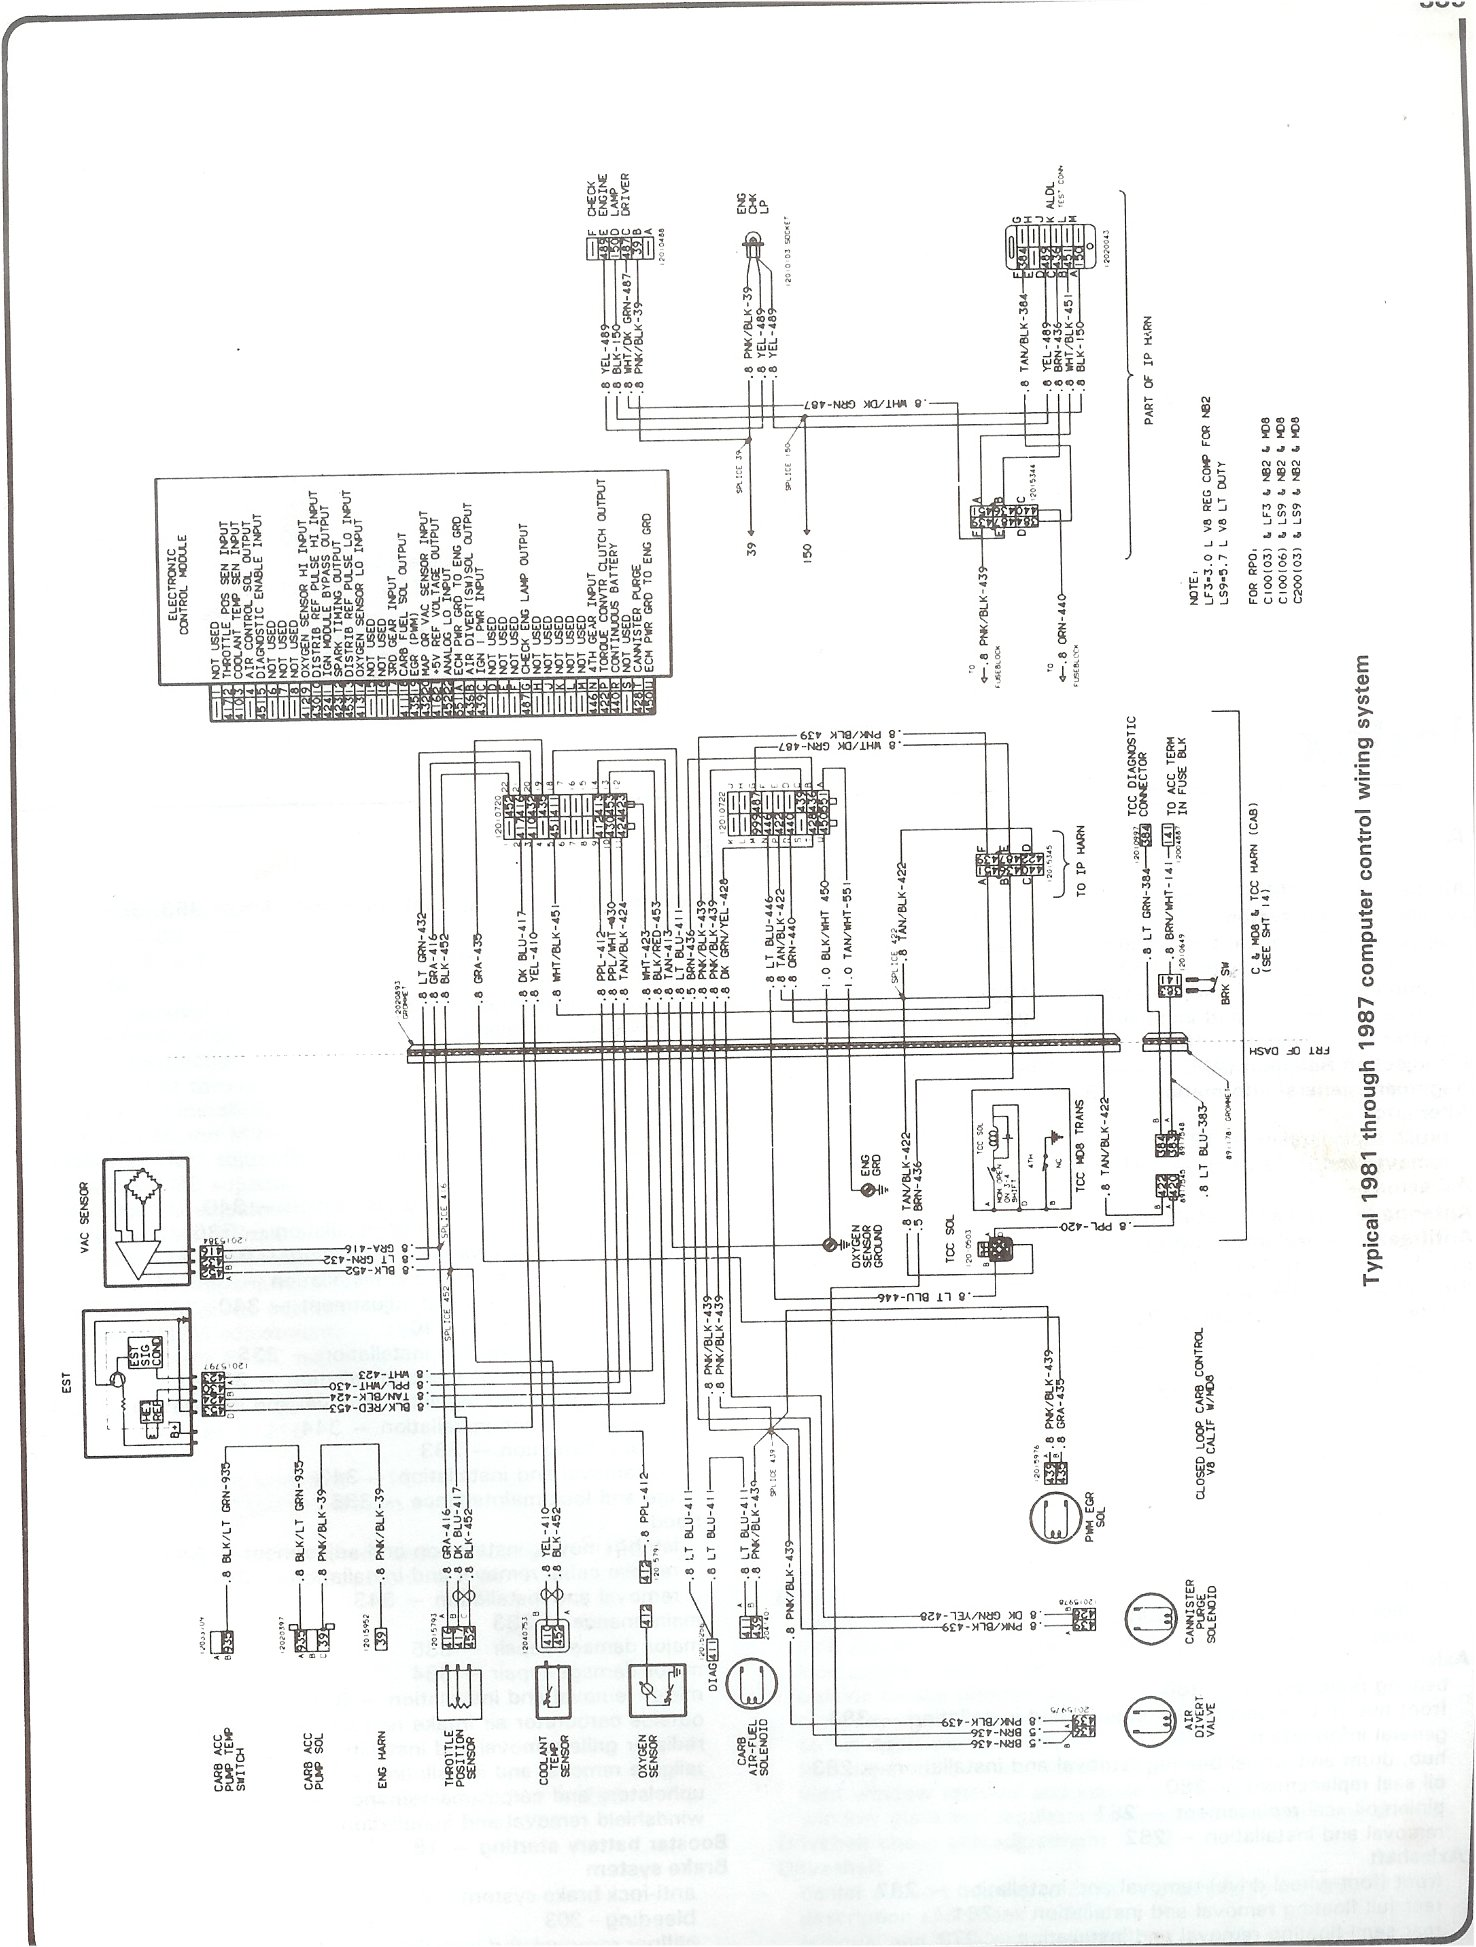 complete 73 87 wiring diagrams rh forum 73 87chevytrucks com chevy truck wiring diagram download chevy truck wiring diagram